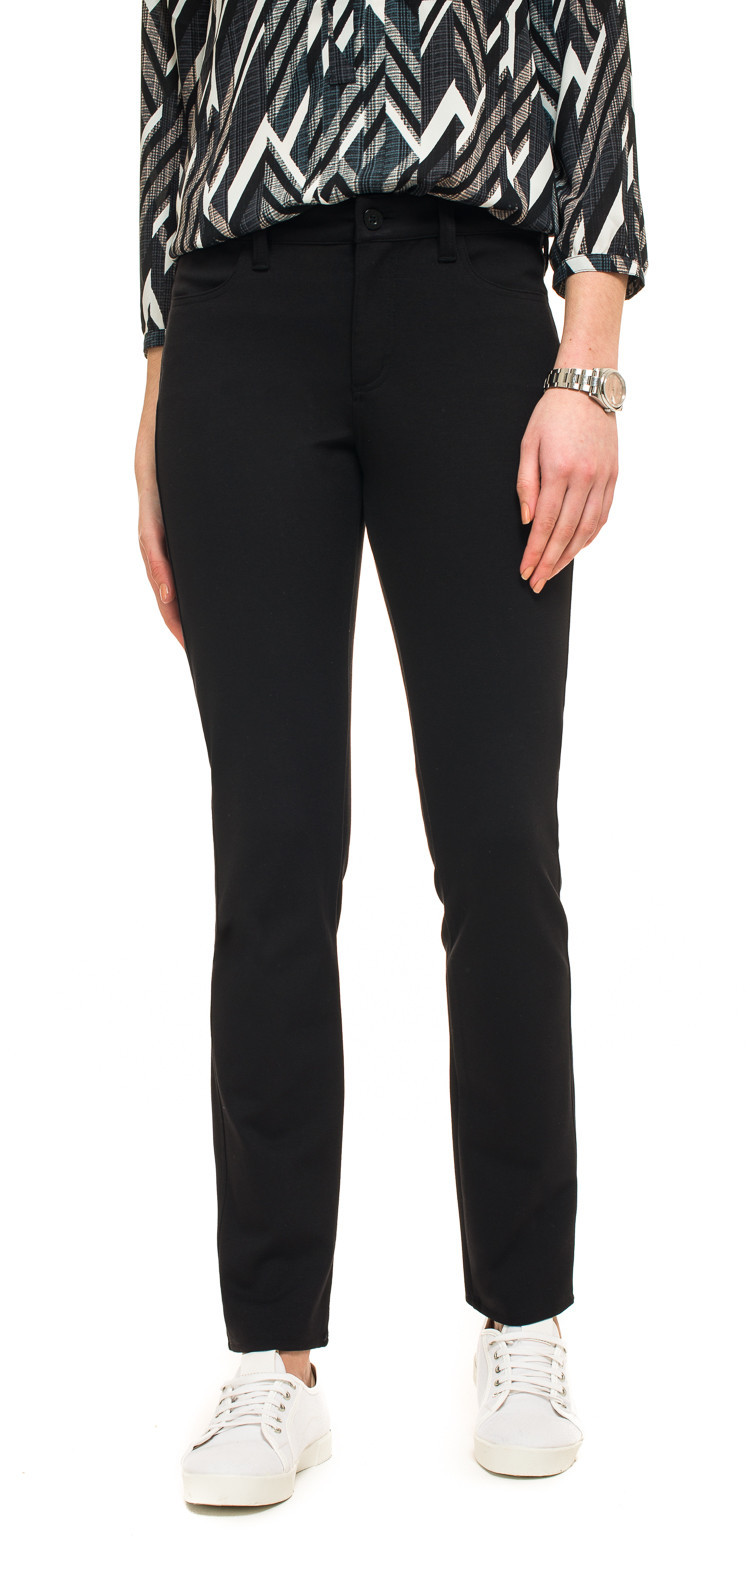 Nydj Black Cindy Slim Jersey Trouser - length: standard; pattern: plain; waist: mid/regular rise; predominant colour: black; occasions: casual, creative work; fibres: viscose/rayon - 100%; fit: slim leg; pattern type: fabric; texture group: jersey - stretchy/drapey; style: standard; wardrobe: basic; season: a/w 2016